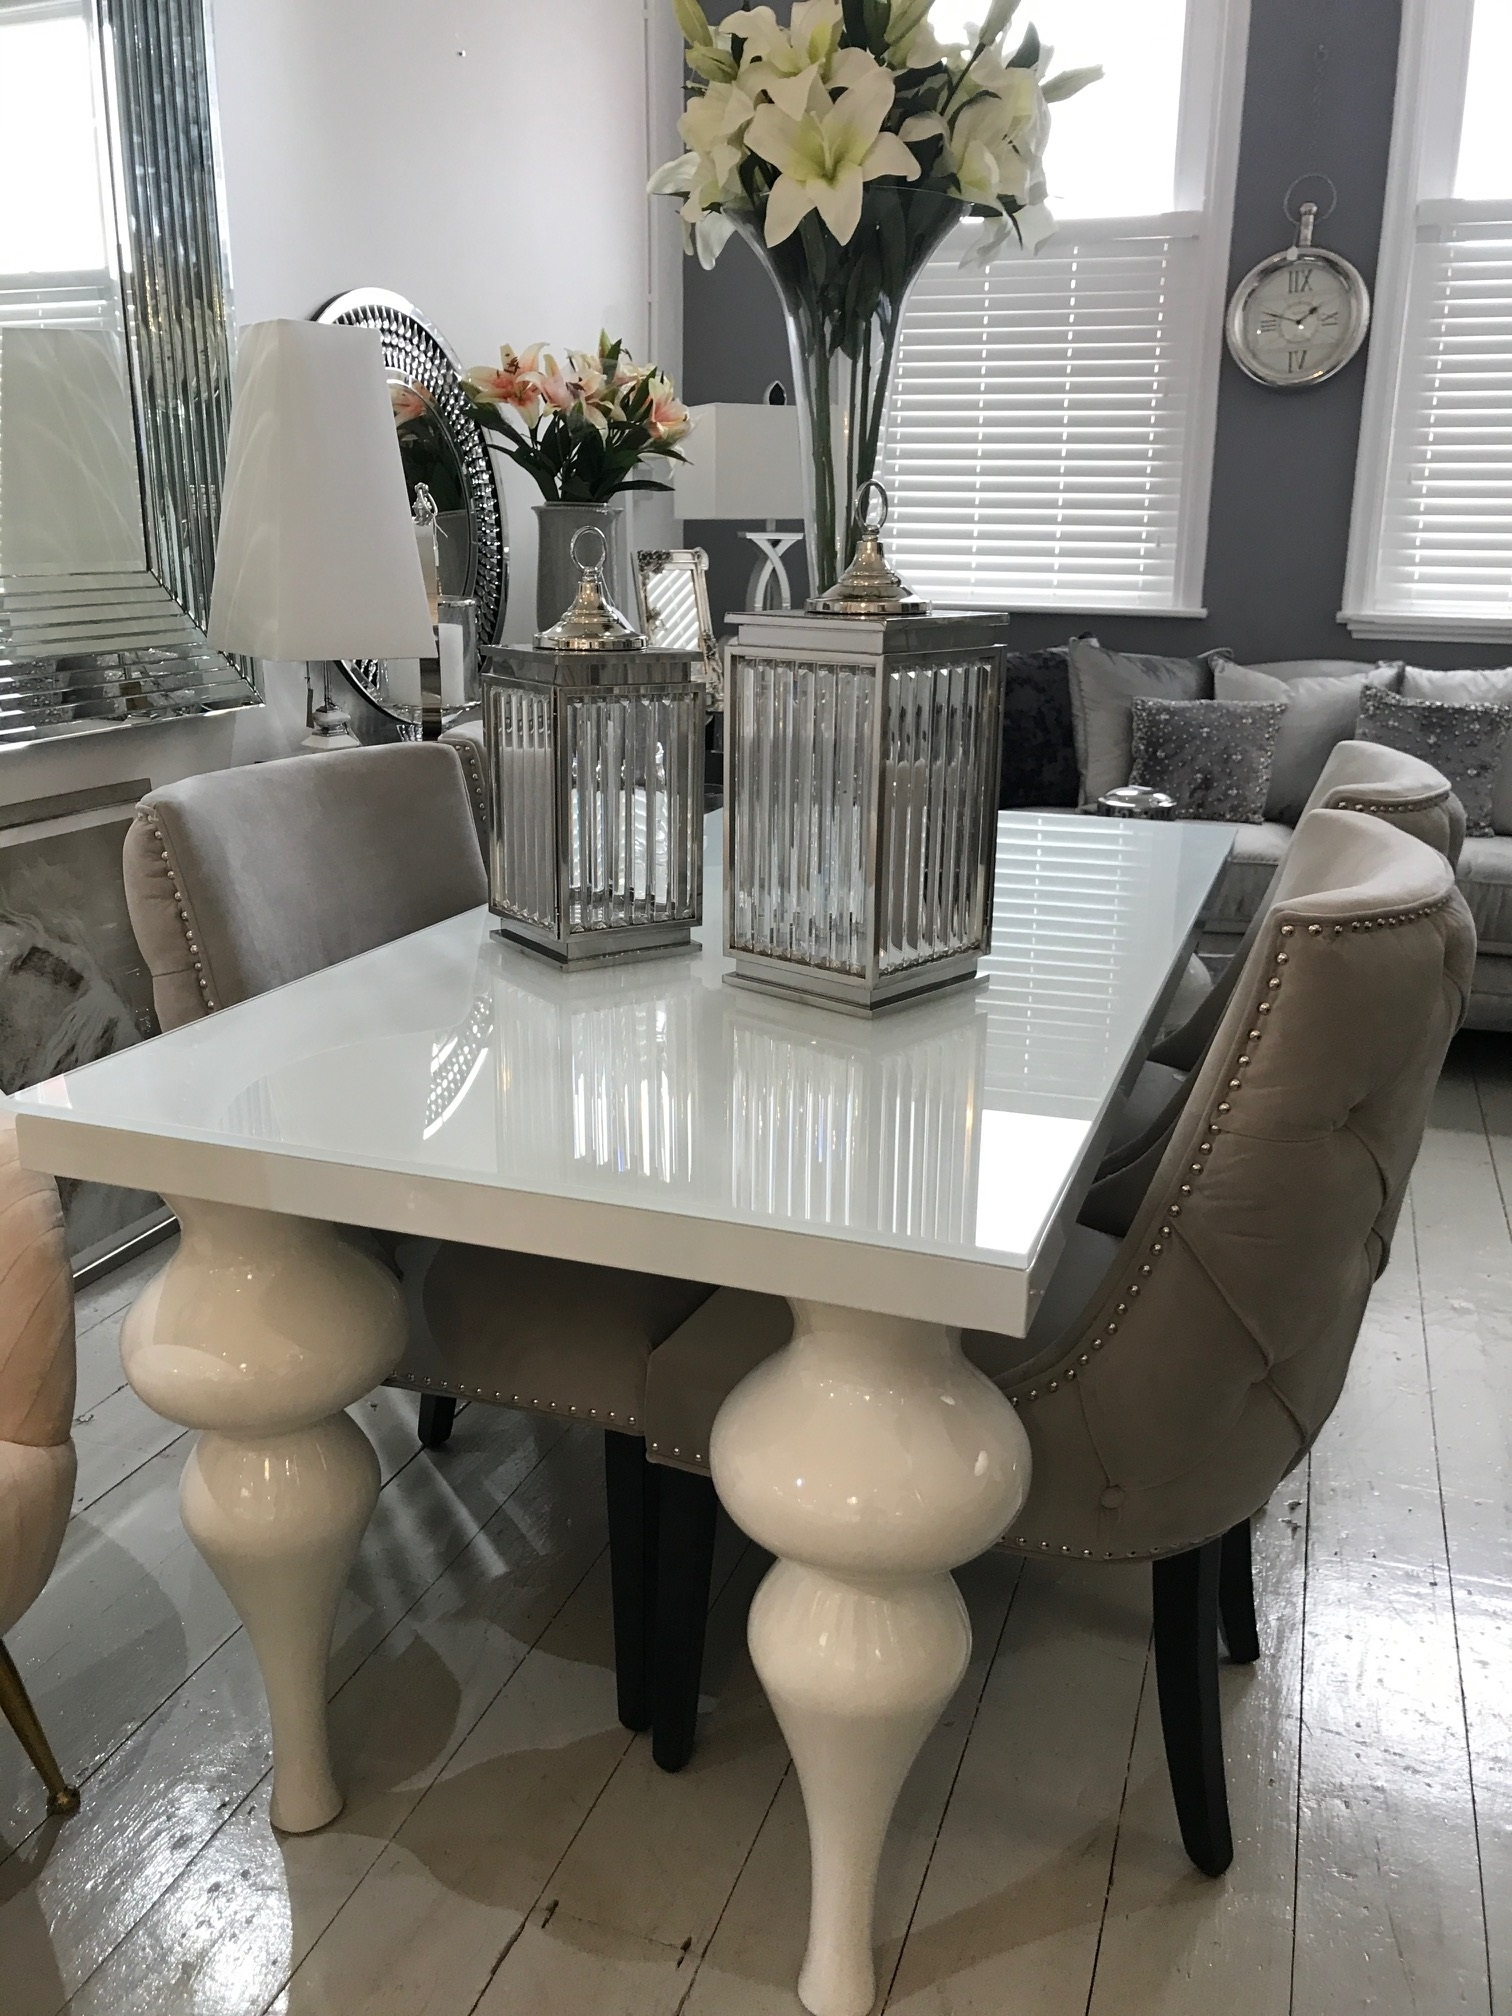 Widely Used White Gloss Dining Table 140Cm – Strawberryperl Throughout White Gloss Dining Tables 140Cm (View 25 of 25)